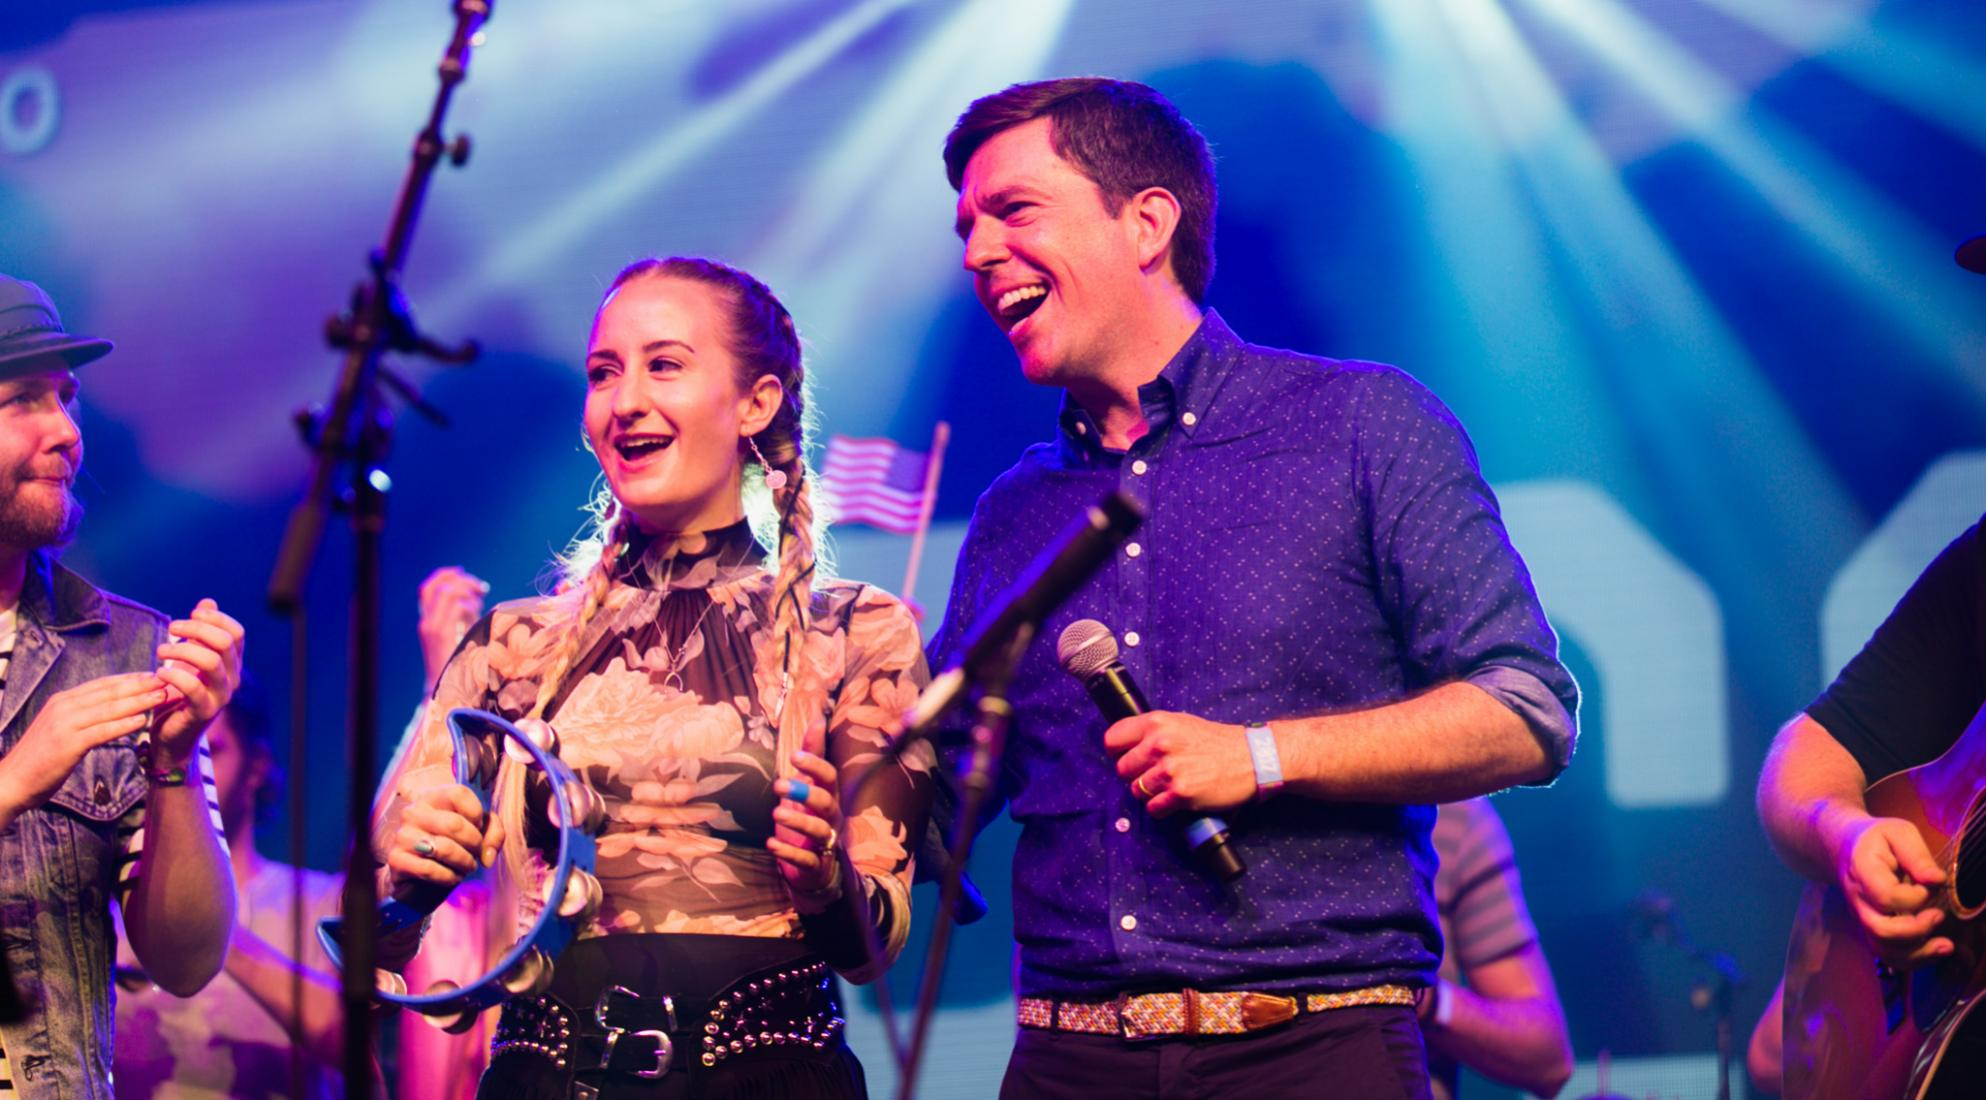 Ed Helms (R) performs withMargo Price